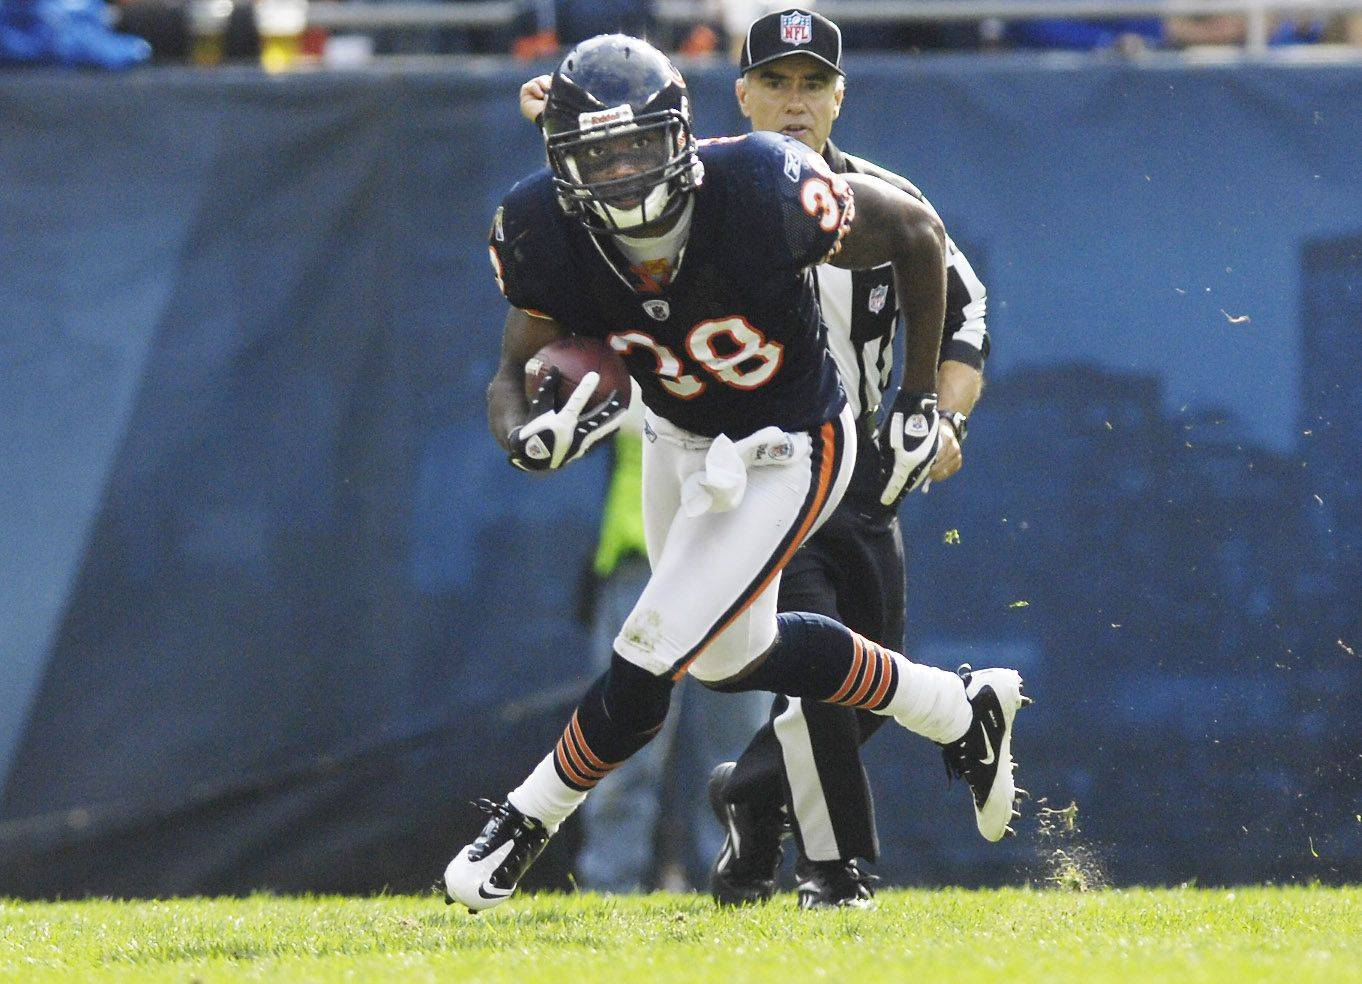 Chicago Bears safety Danieal Manning returns an interception against the Washington Redskins Sunday at Soldier Field.